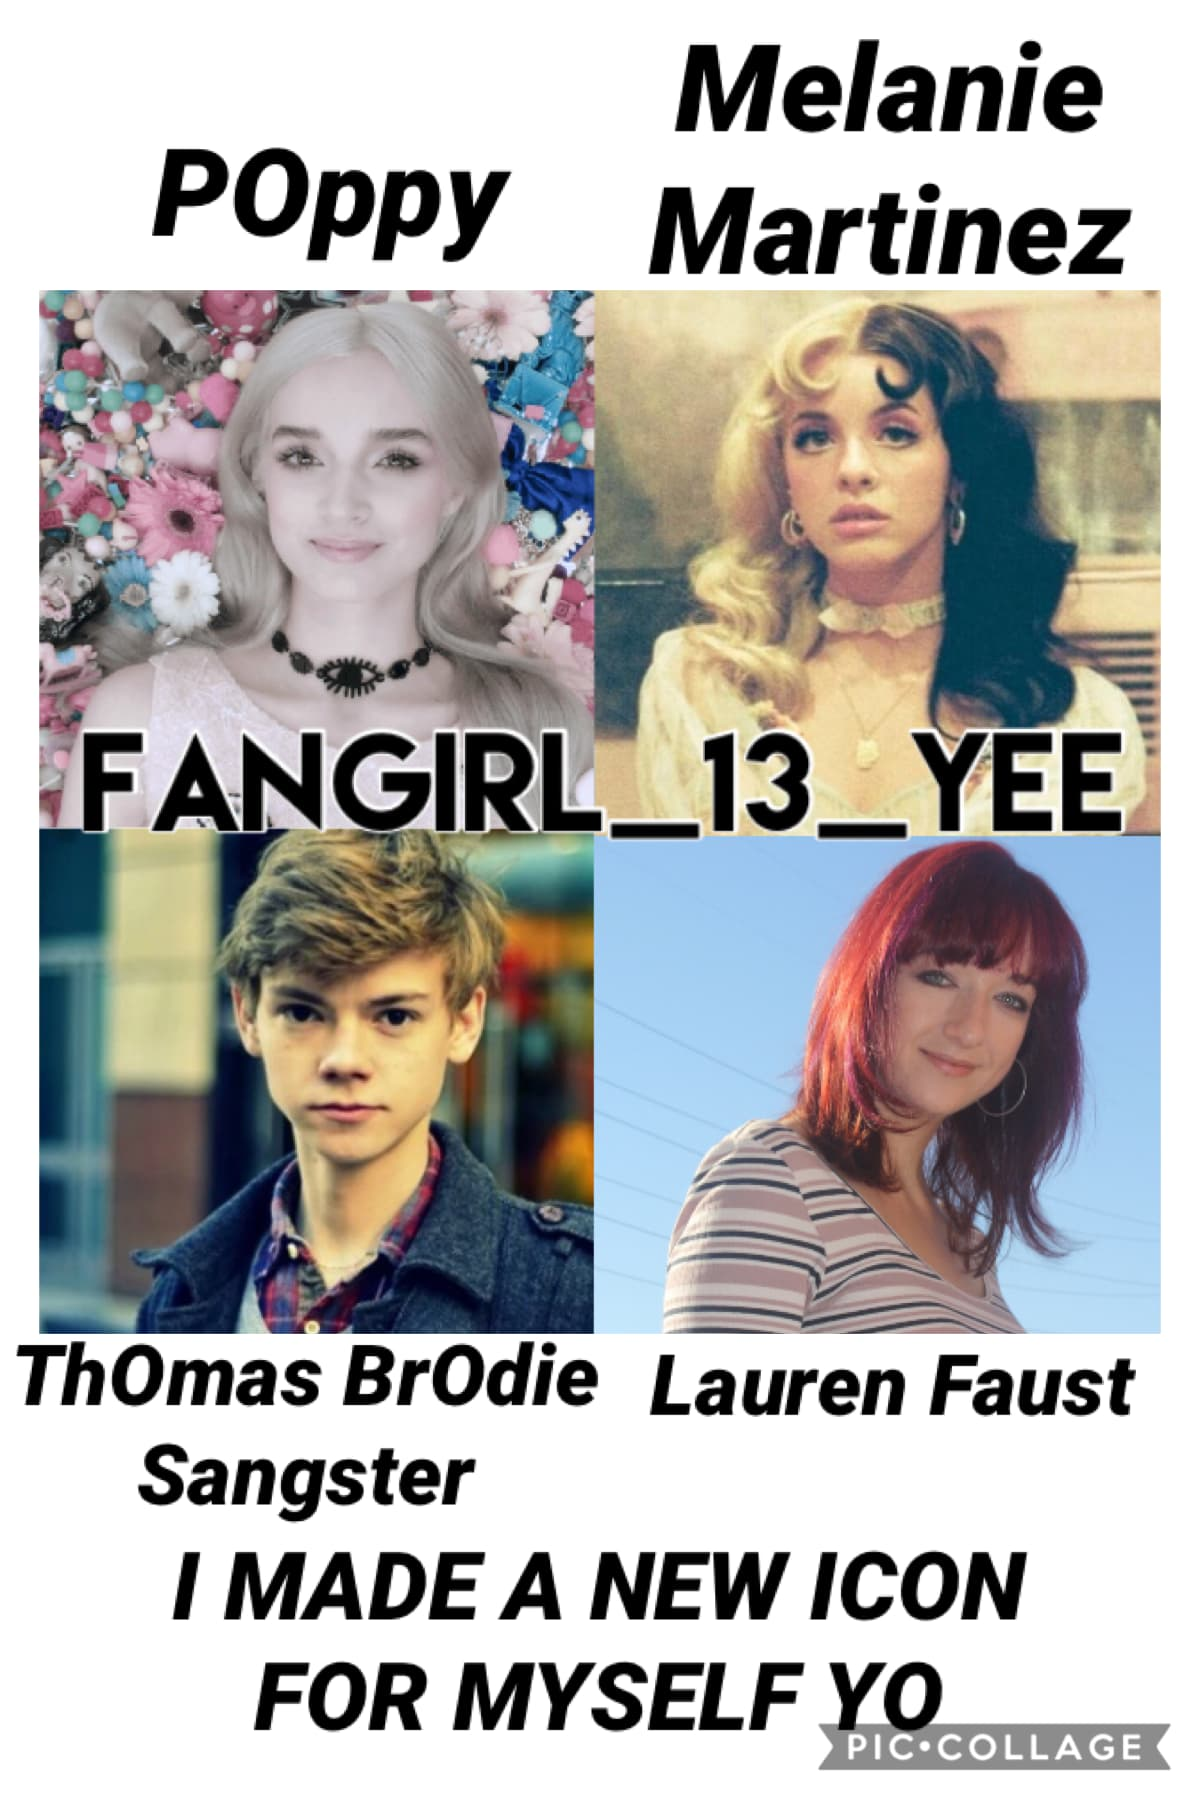 It's my favOrite peOple :P I wOuld Have put Tara StrOng, the actress that plays Twilight Sparkle, but I figured since I already had One actOr On it, then I wOuld put the creatOr Of the newest MLP series, Lauren Faust, instead :D